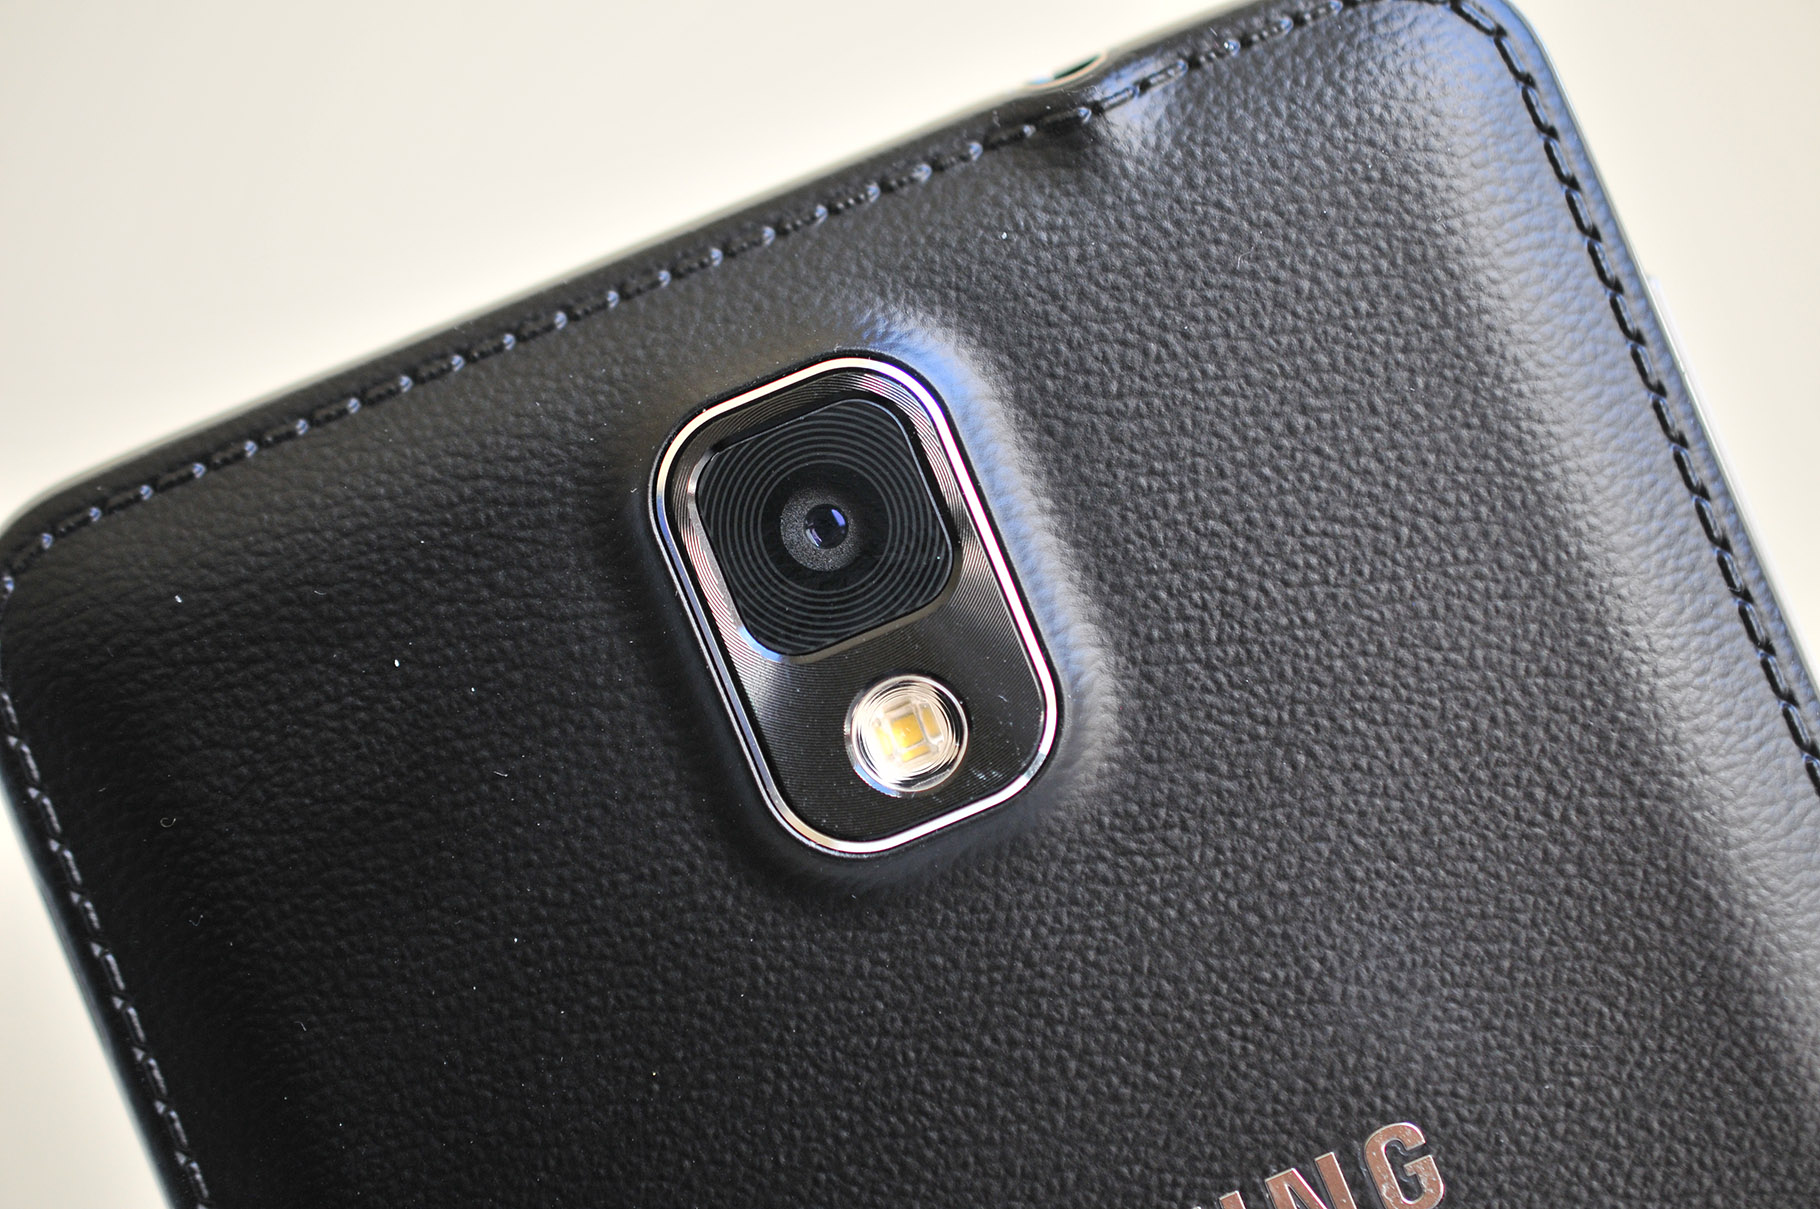 Samsung Galaxy Note 3 - camara